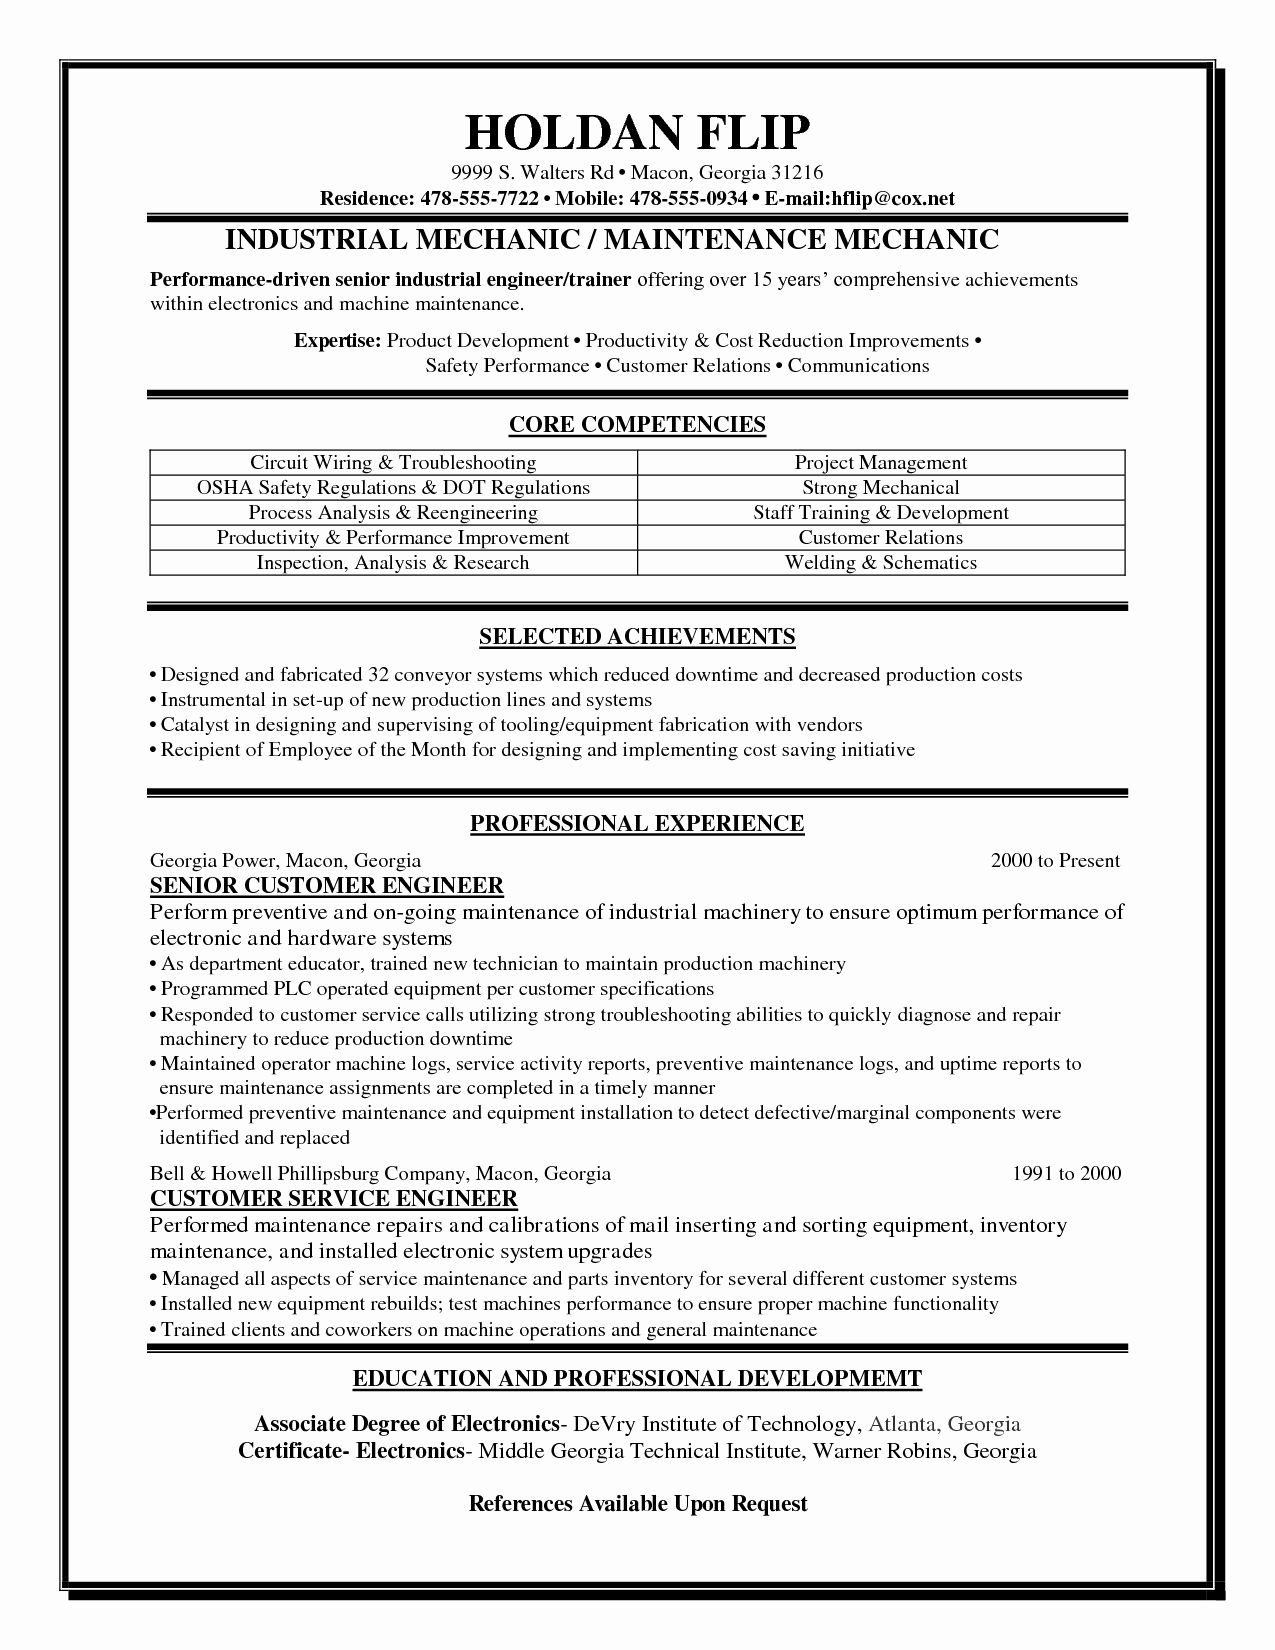 Tire Technician Job Description Resume Resume Ideas